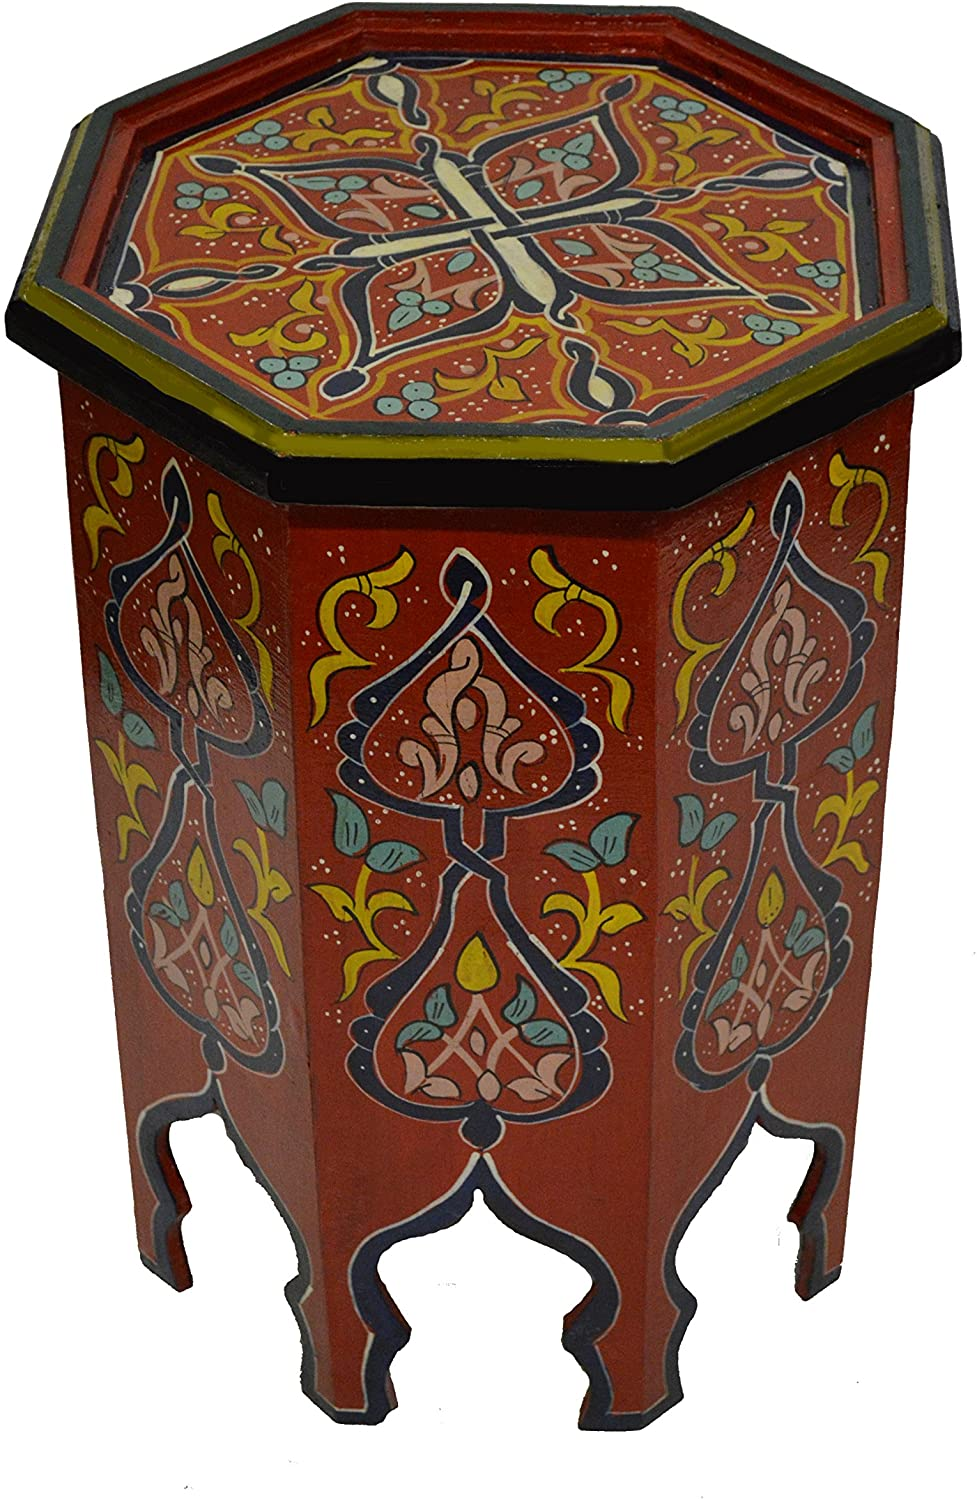 Moroccan Handmade Wood Table Side Delicate Hand Painted Red Exquisite